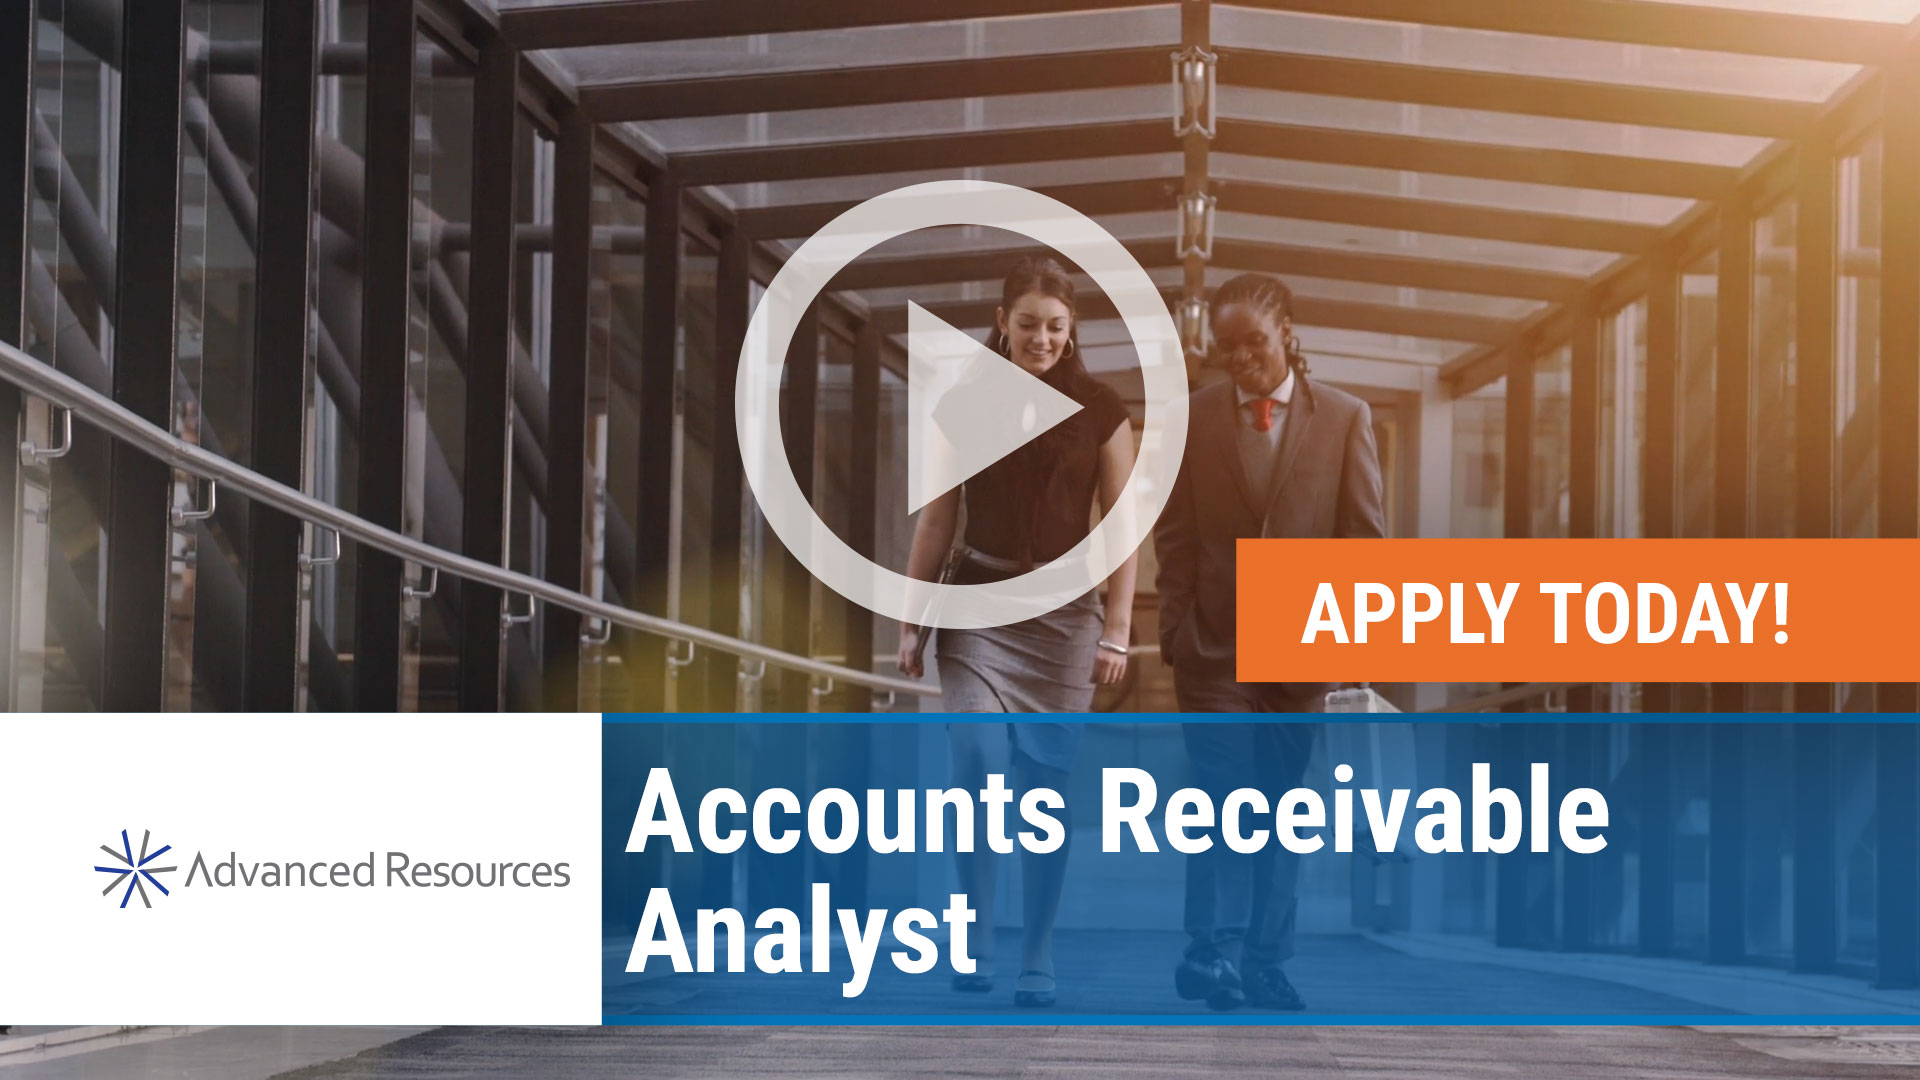 Watch our careers video for available job opening Accounts Receivable Analyst in Chicago, IL